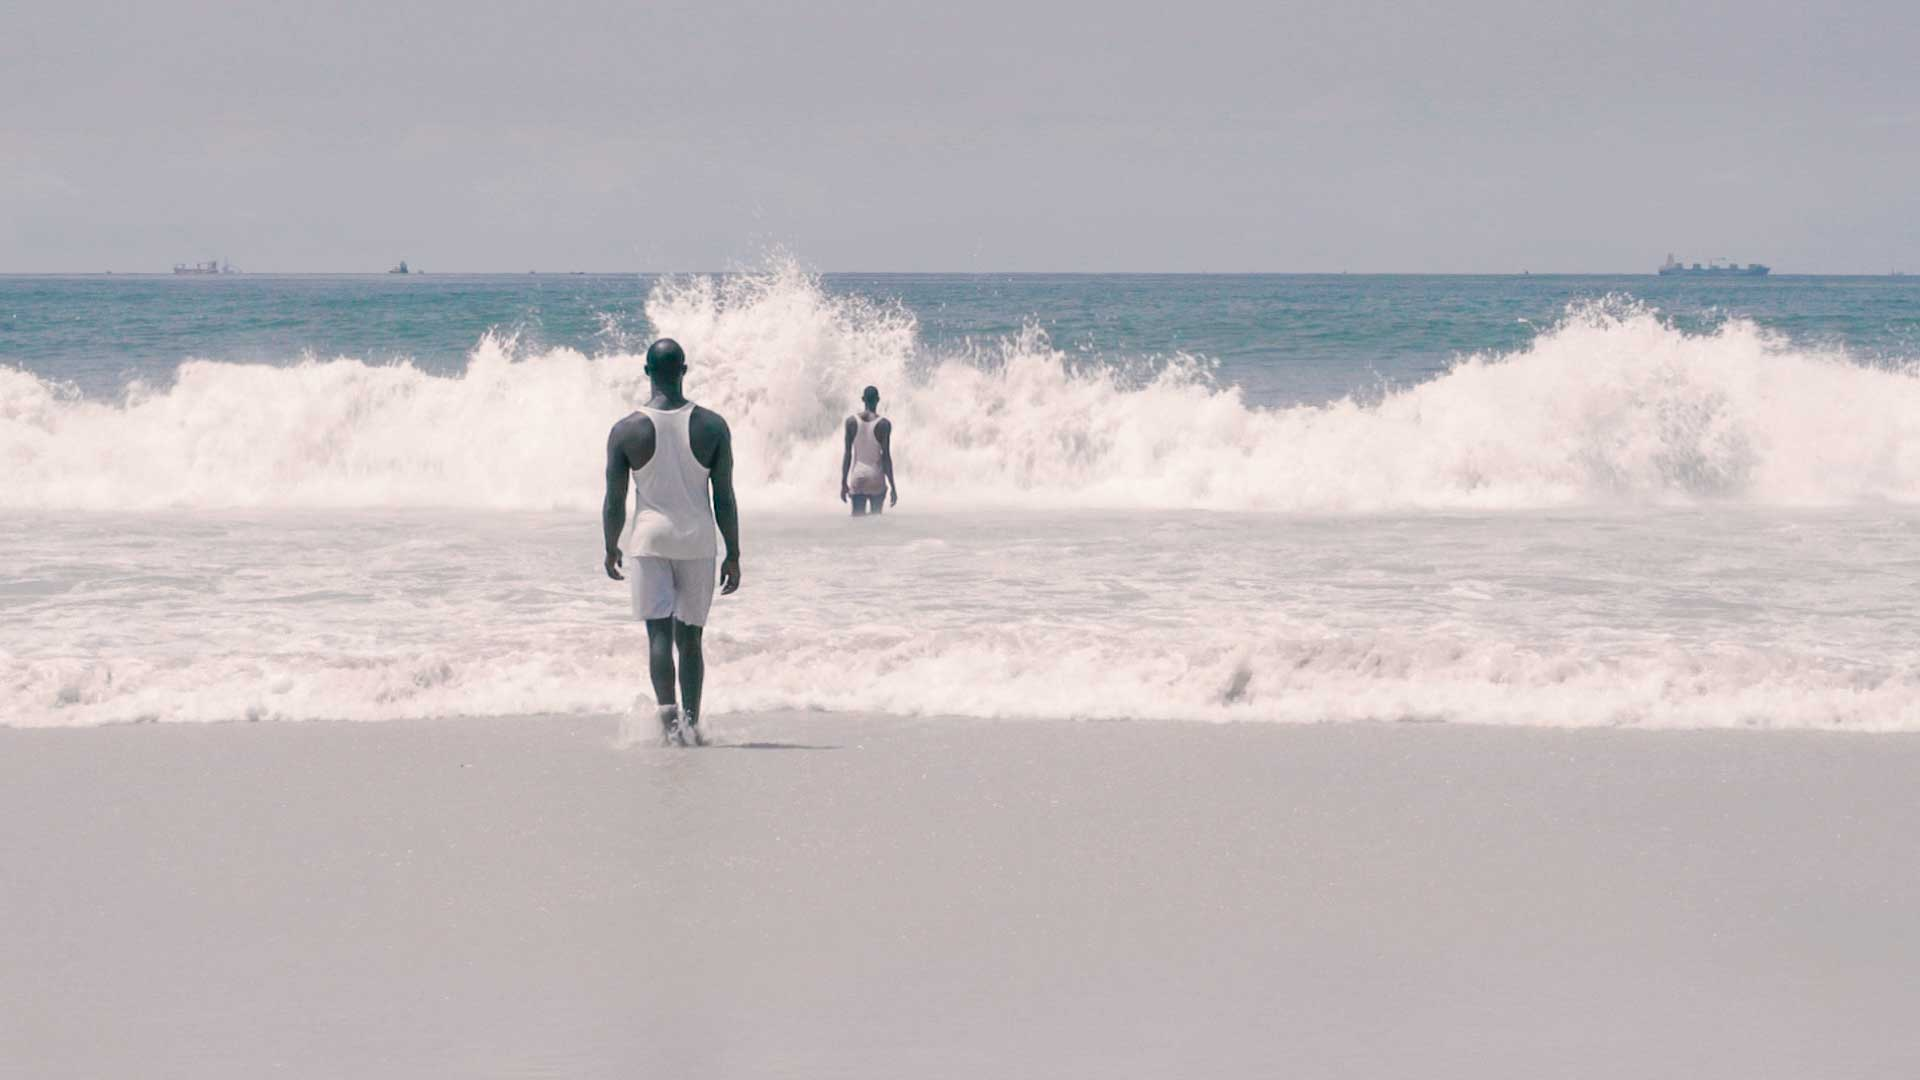 Sirens (video still)